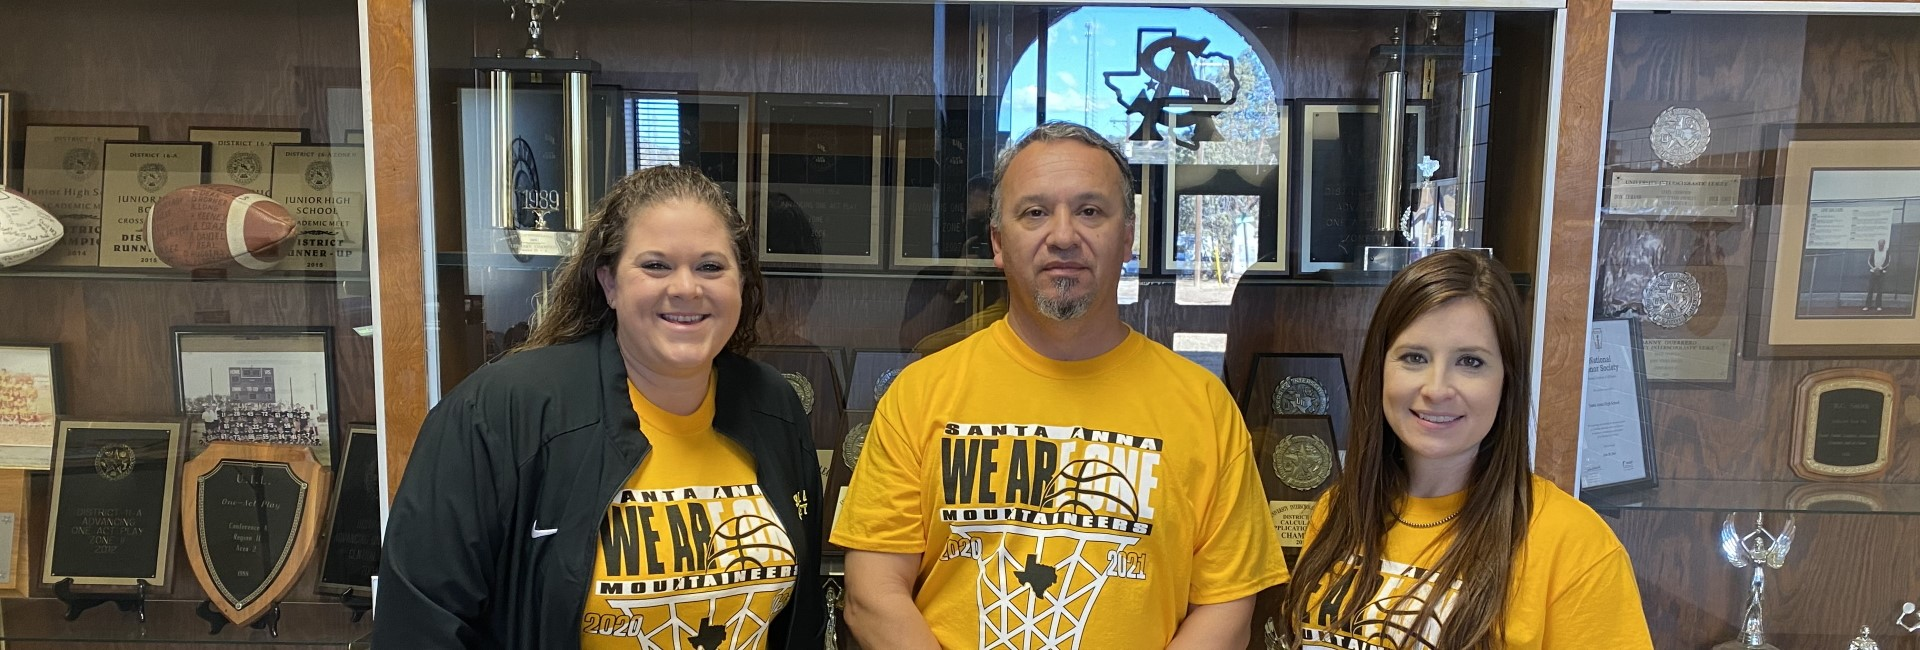 JH/HS Office Staff: Ms. Donham - Campus Secretary, Mr. Morales - Principal, Ms. Fitzpatrick - Dean of Students